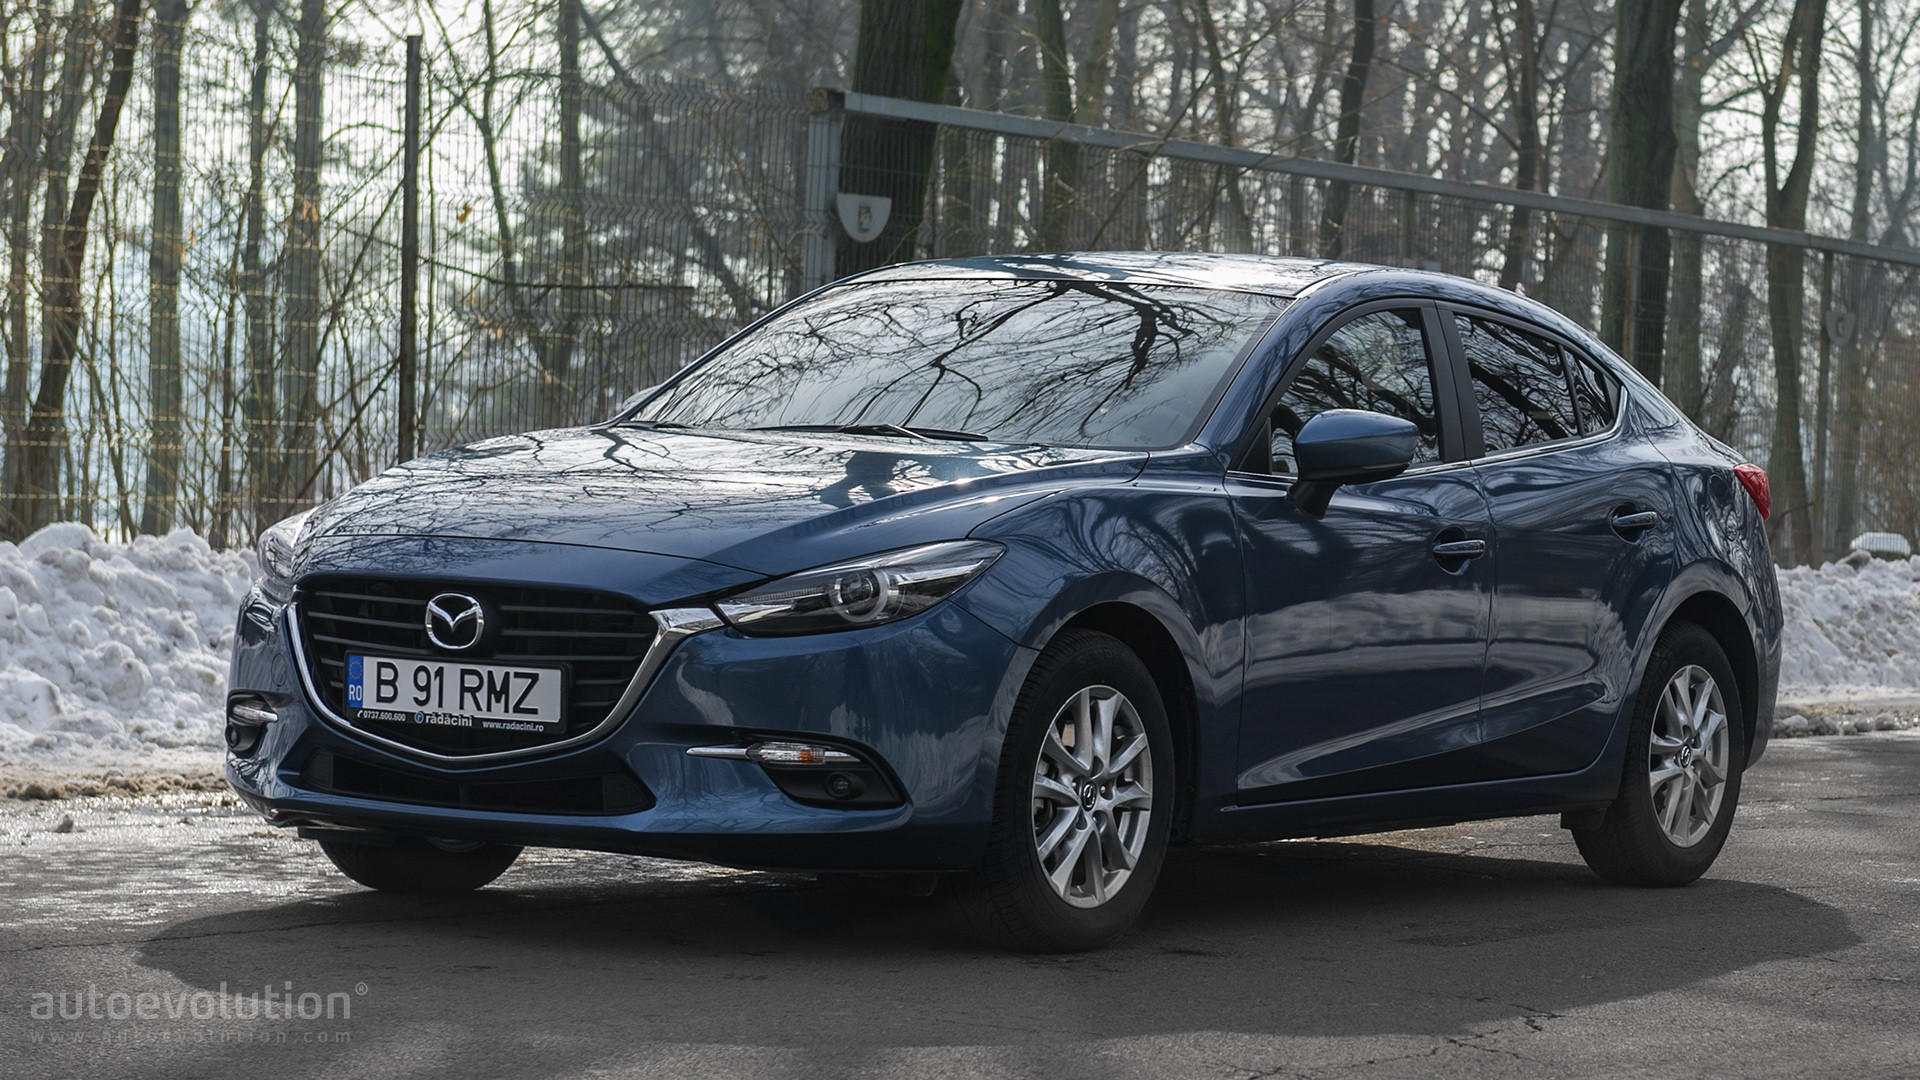 https://s1.cdn.autoevolution.com/images/news/gallery/driven-2017-mazda3-sedan-20-g120_14.jpg